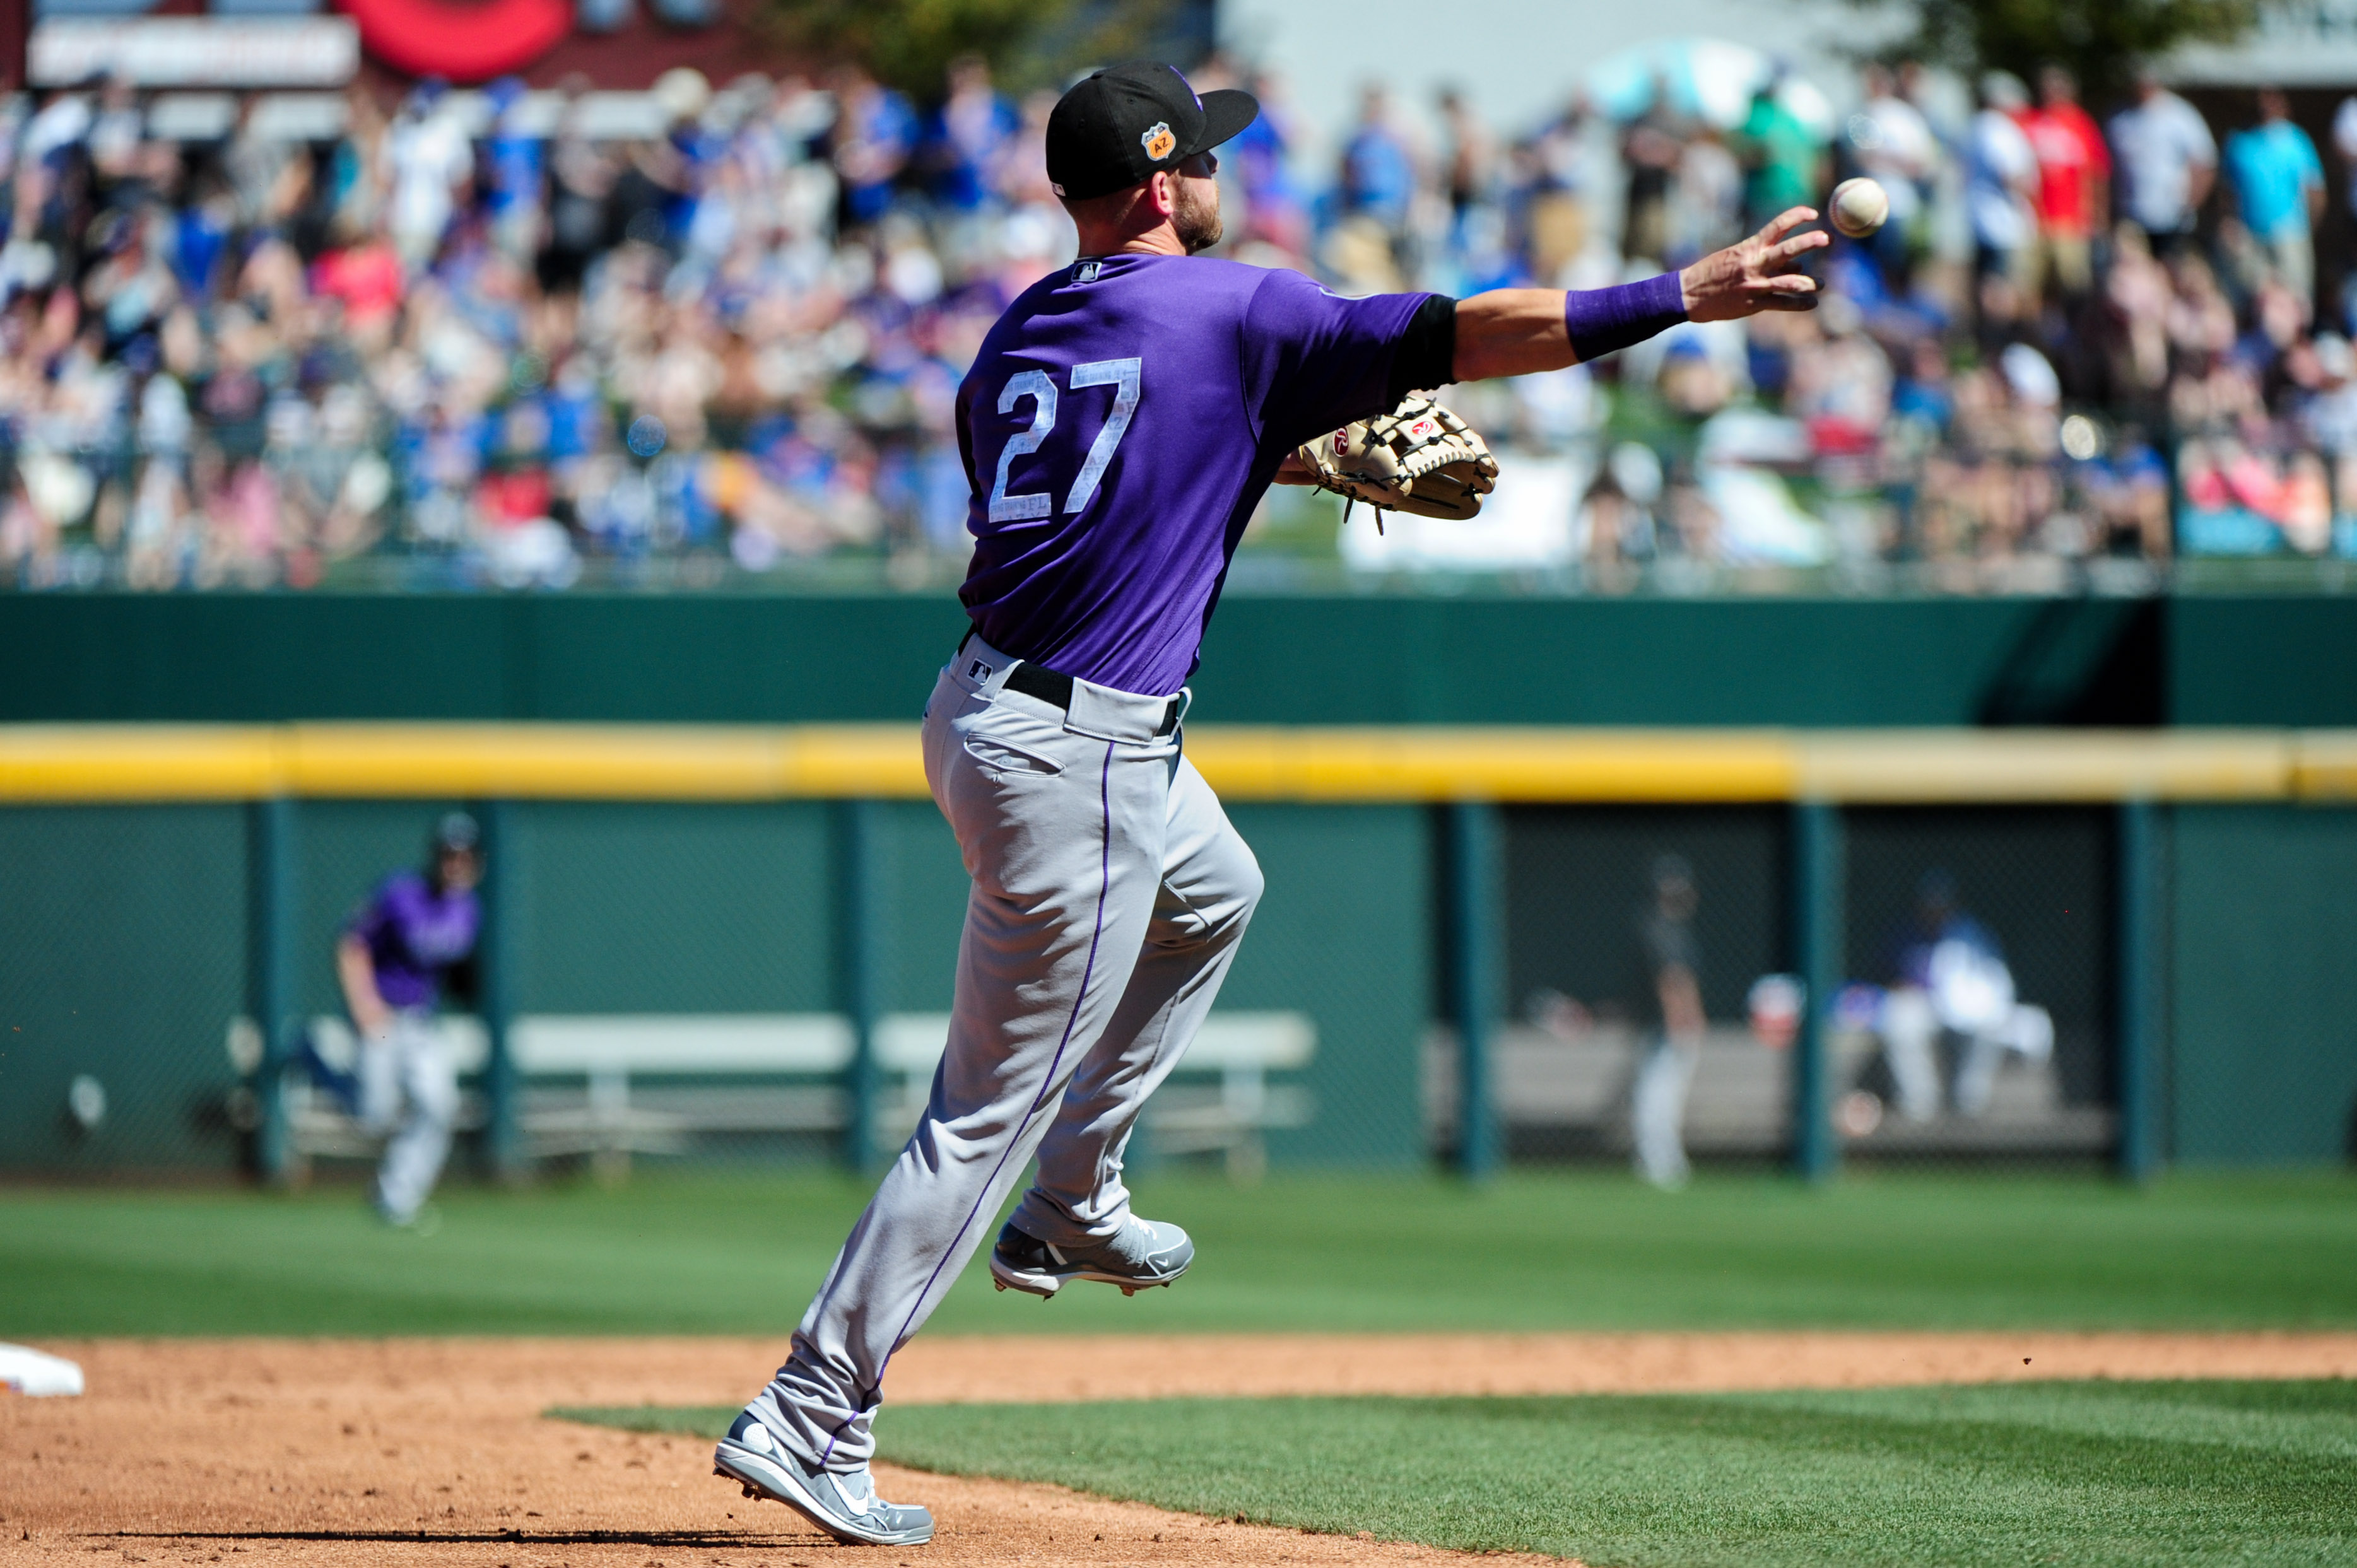 9934332-mlb-spring-training-colorado-rockies-at-chicago-cubs